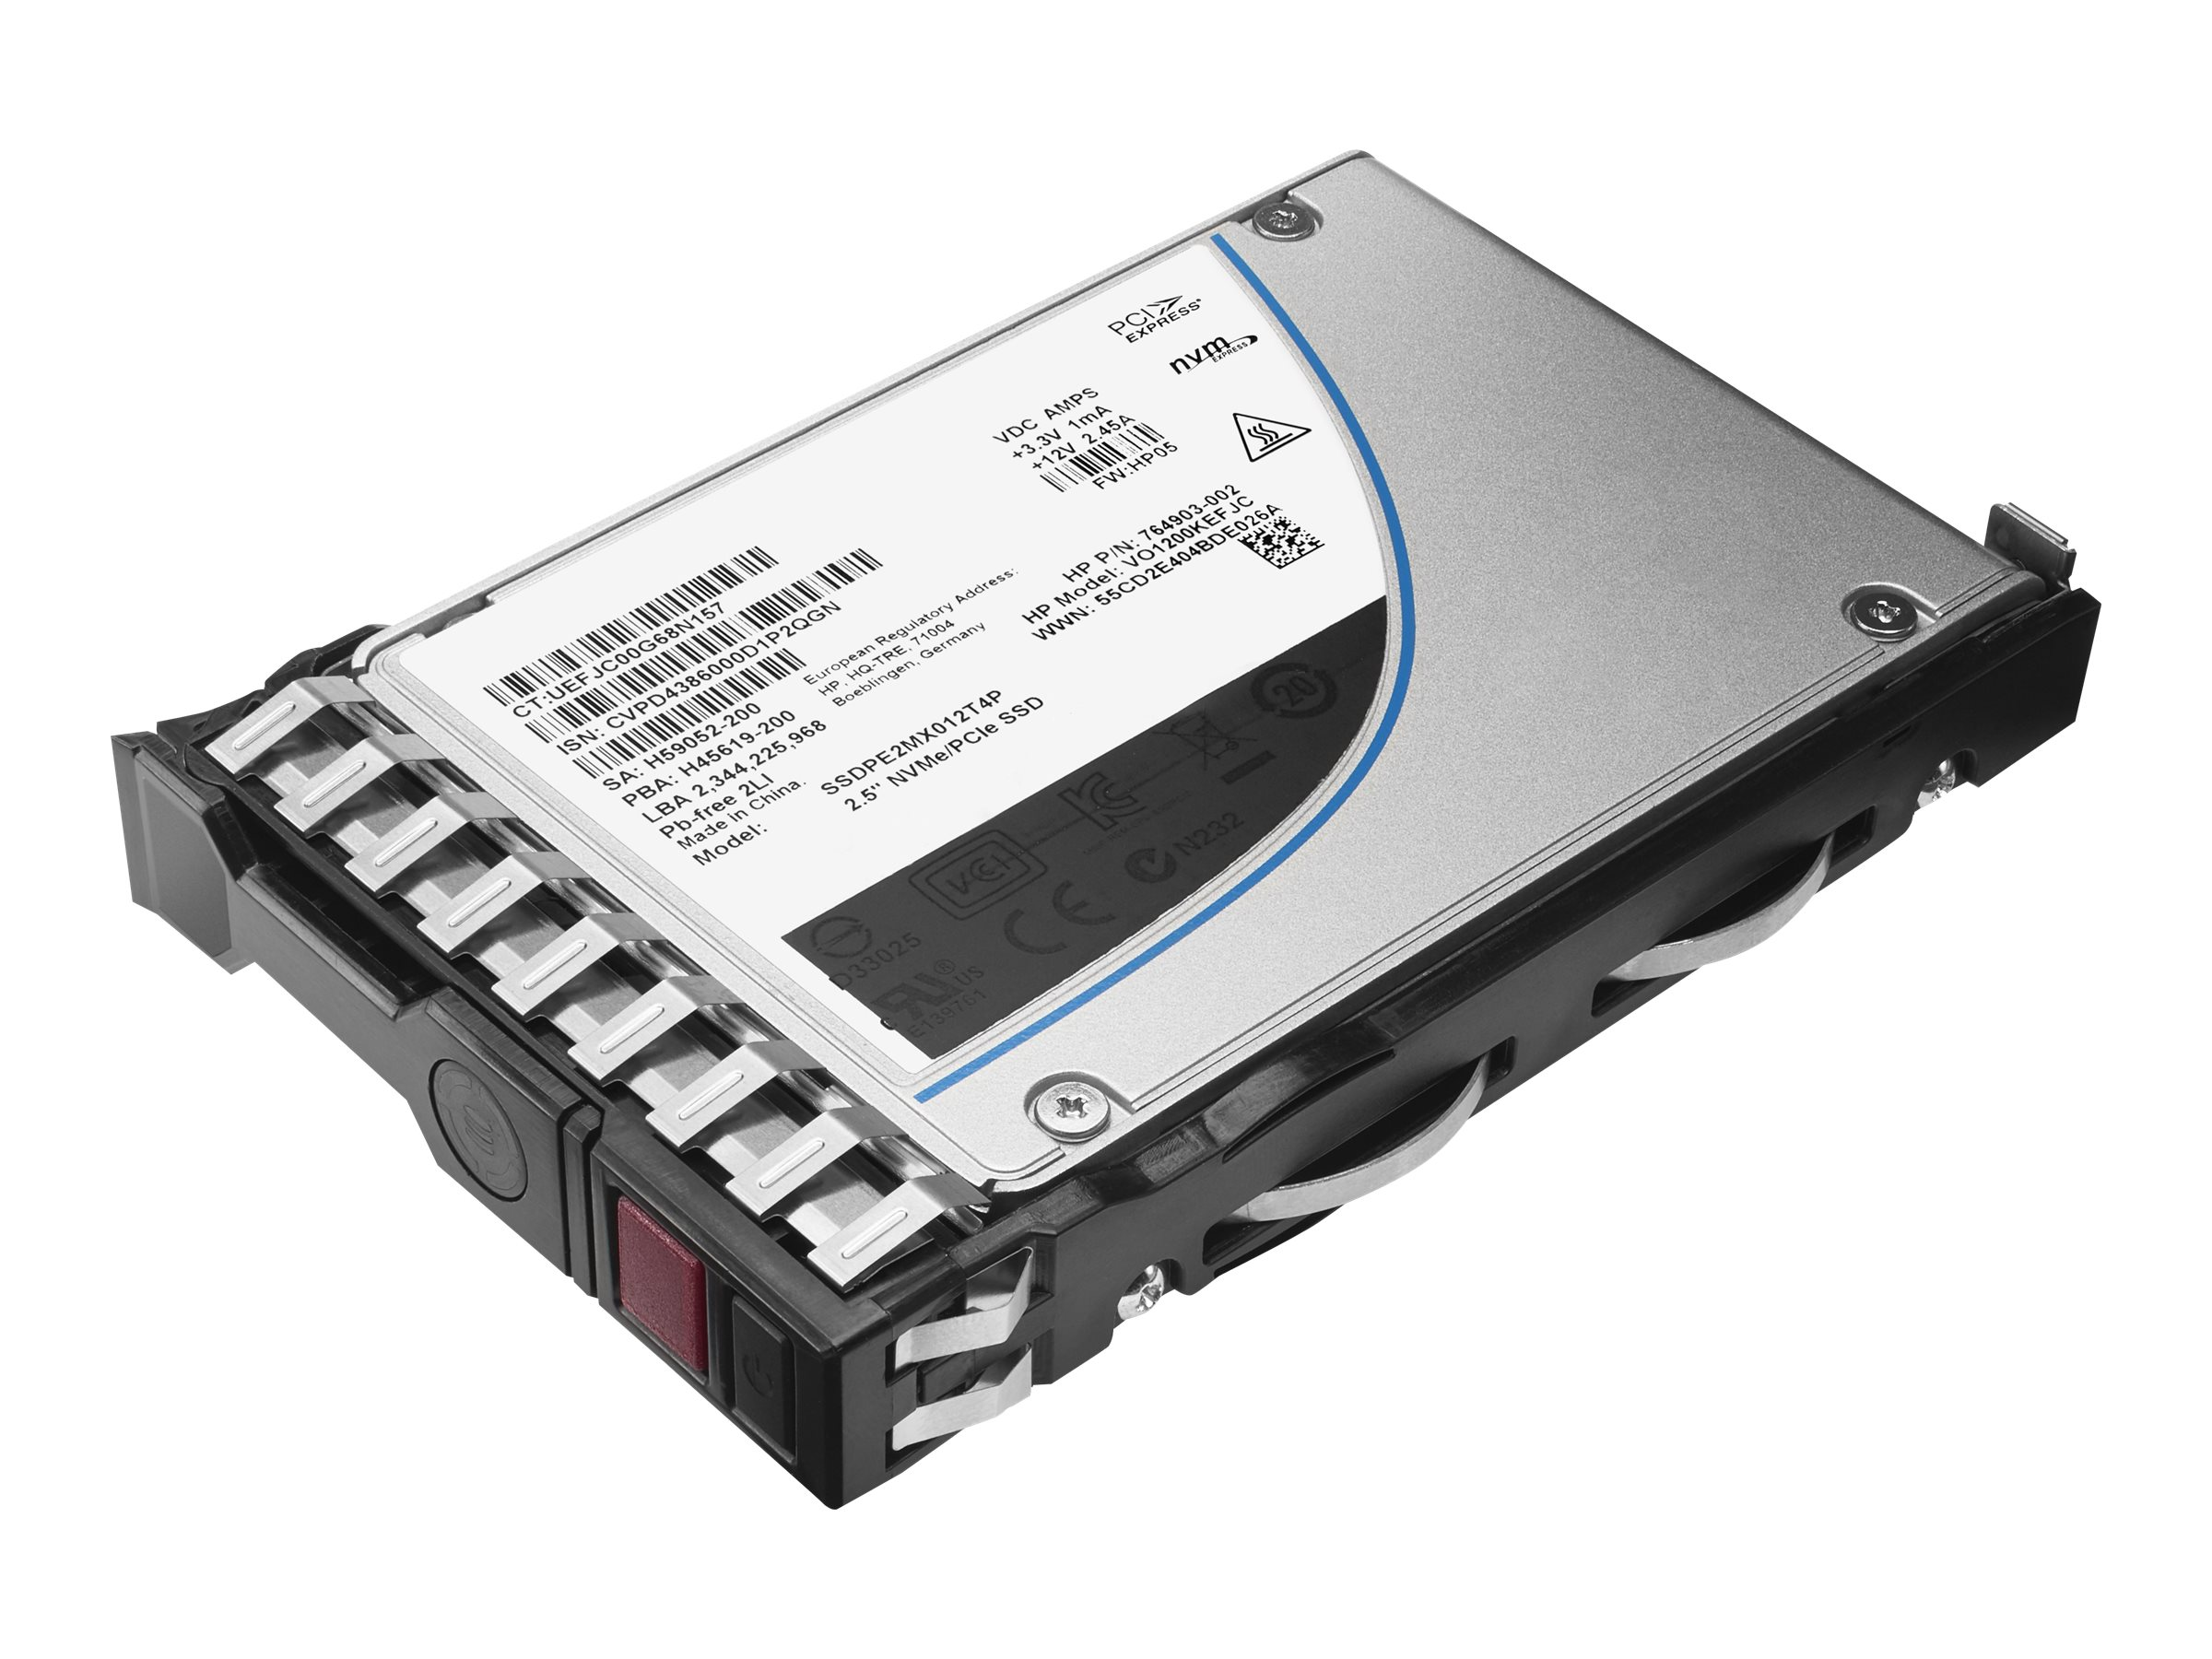 HPE 800GB SAS 12Gb s Write Intensive SFF 2.5 Hot Plug Solid State Drive for Gen8 Servers & Beyond, 802586-B21